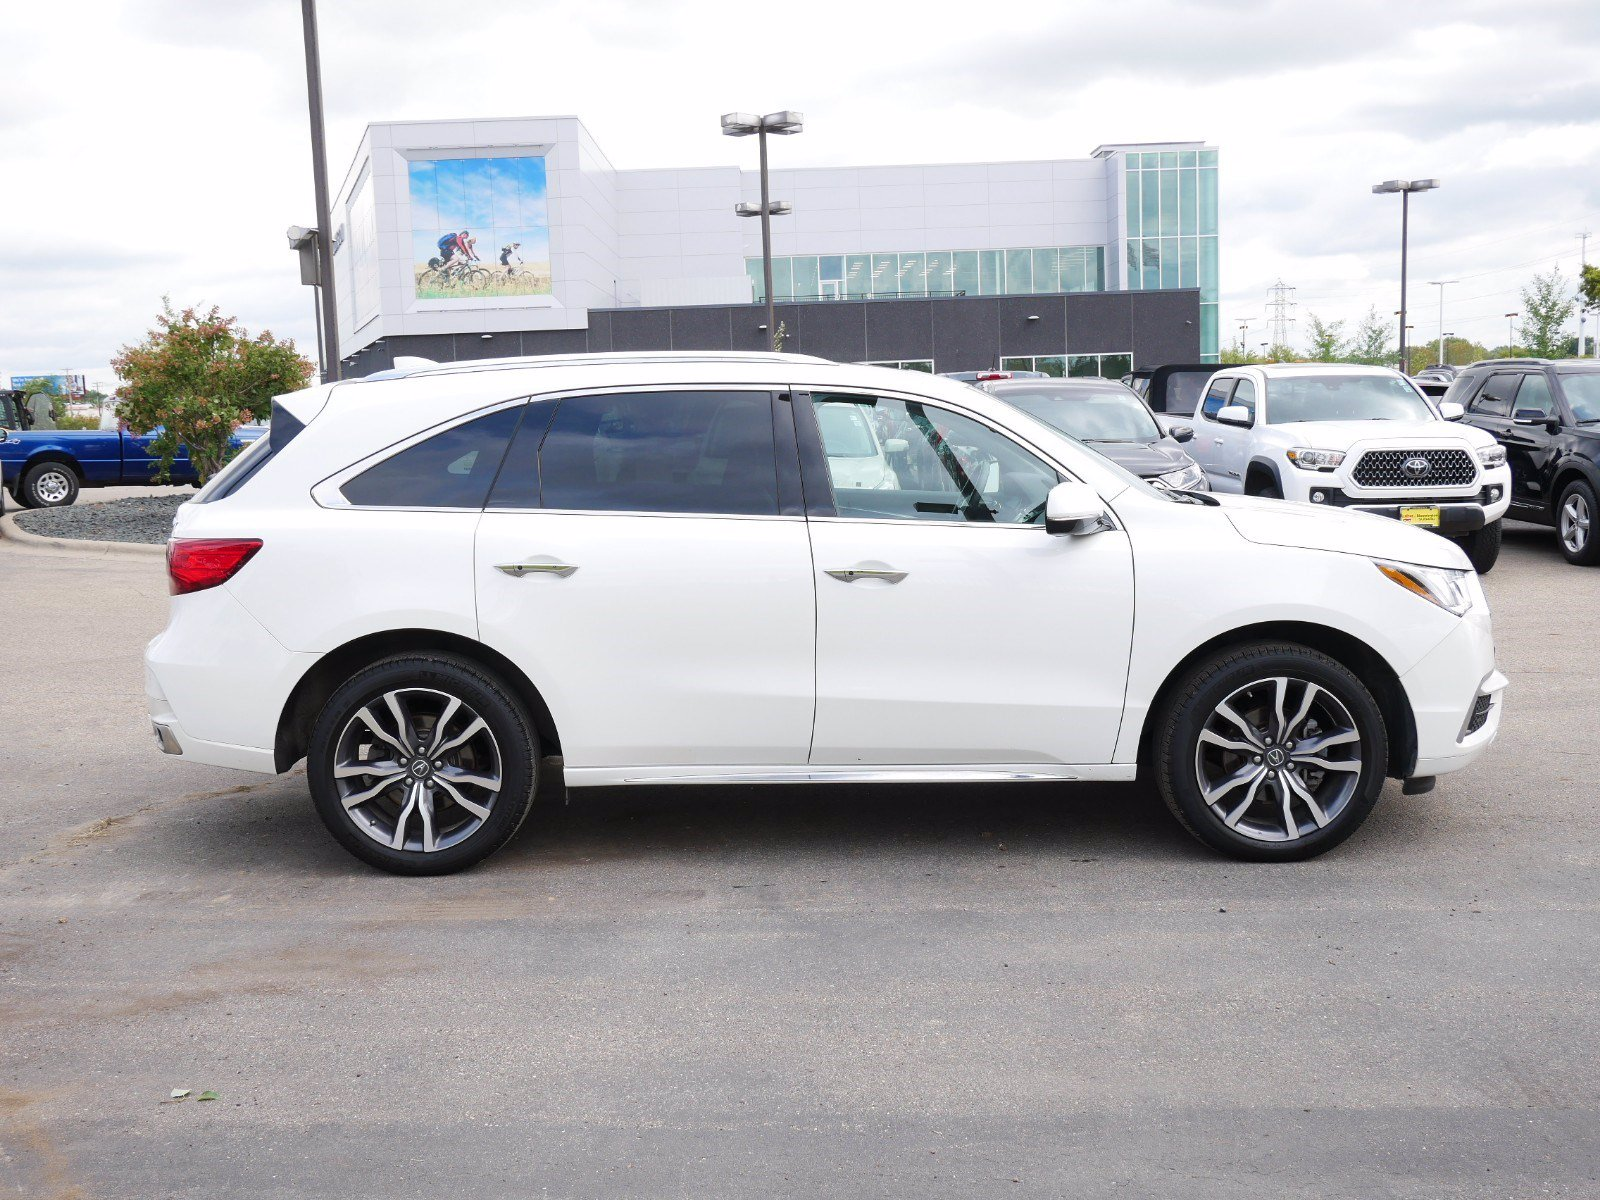 Certified 2019 Acura MDX Advance and Entertainment Package with VIN 5J8YD4H94KL018862 for sale in Bloomington, Minnesota